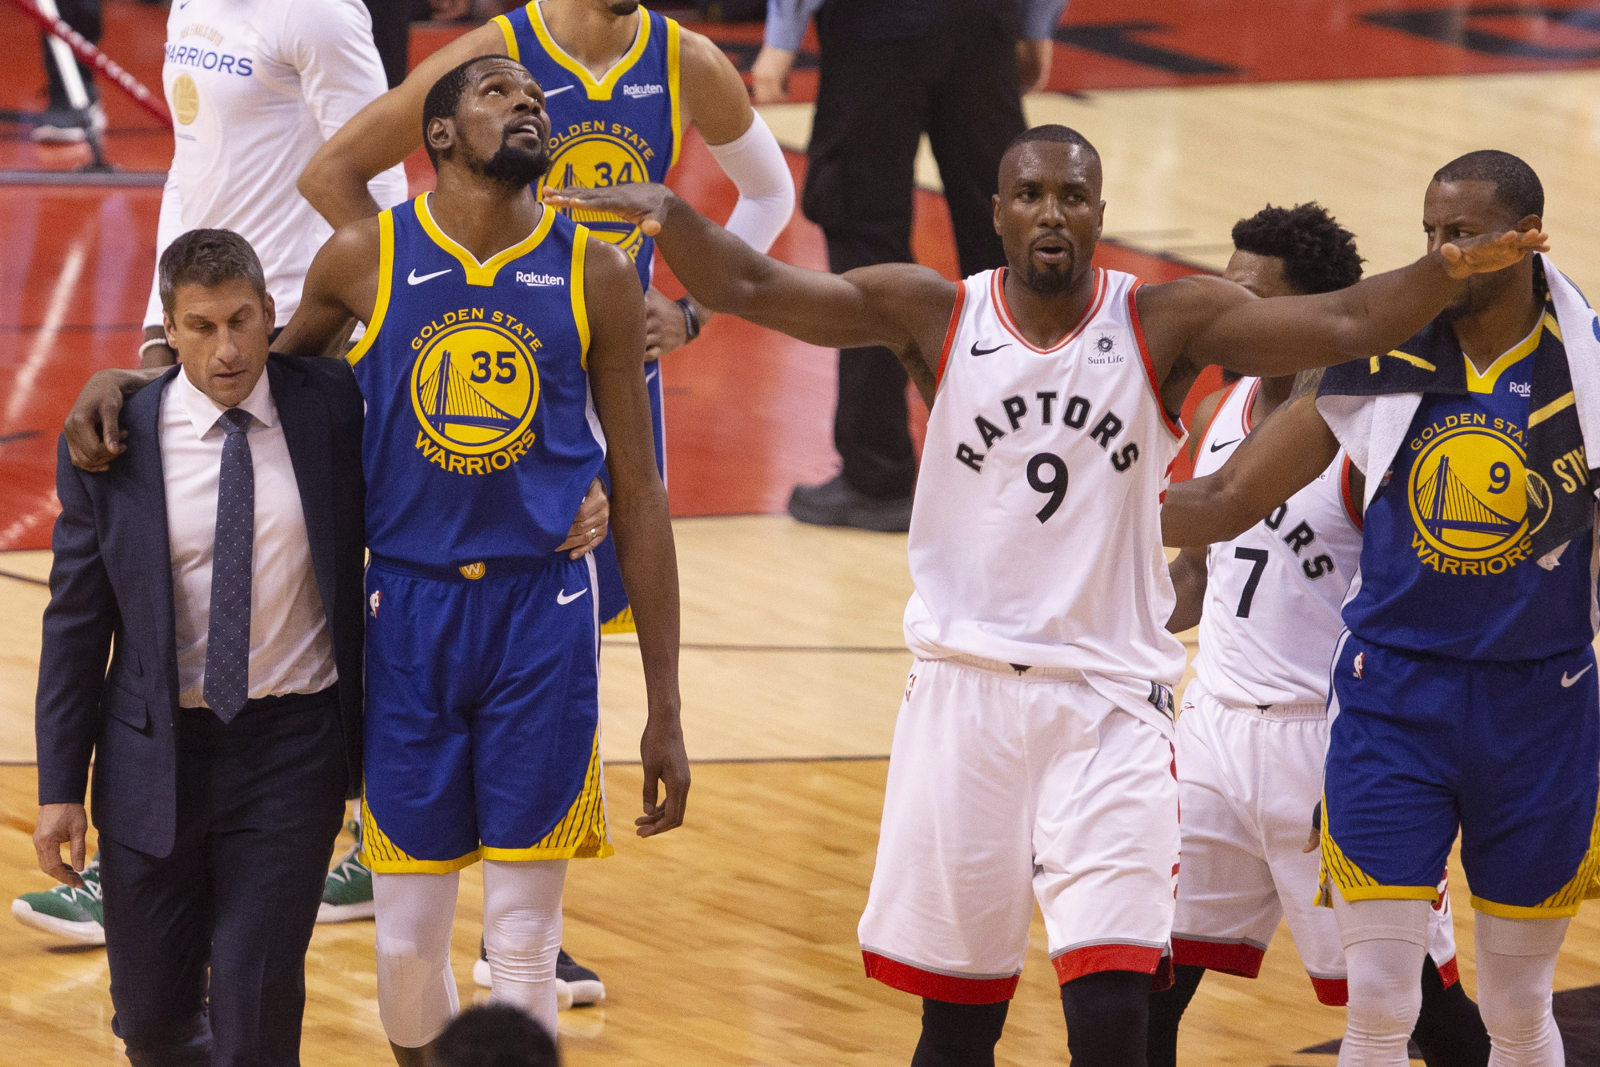 We fact-checked a fake video of Raptors fans cheering for an